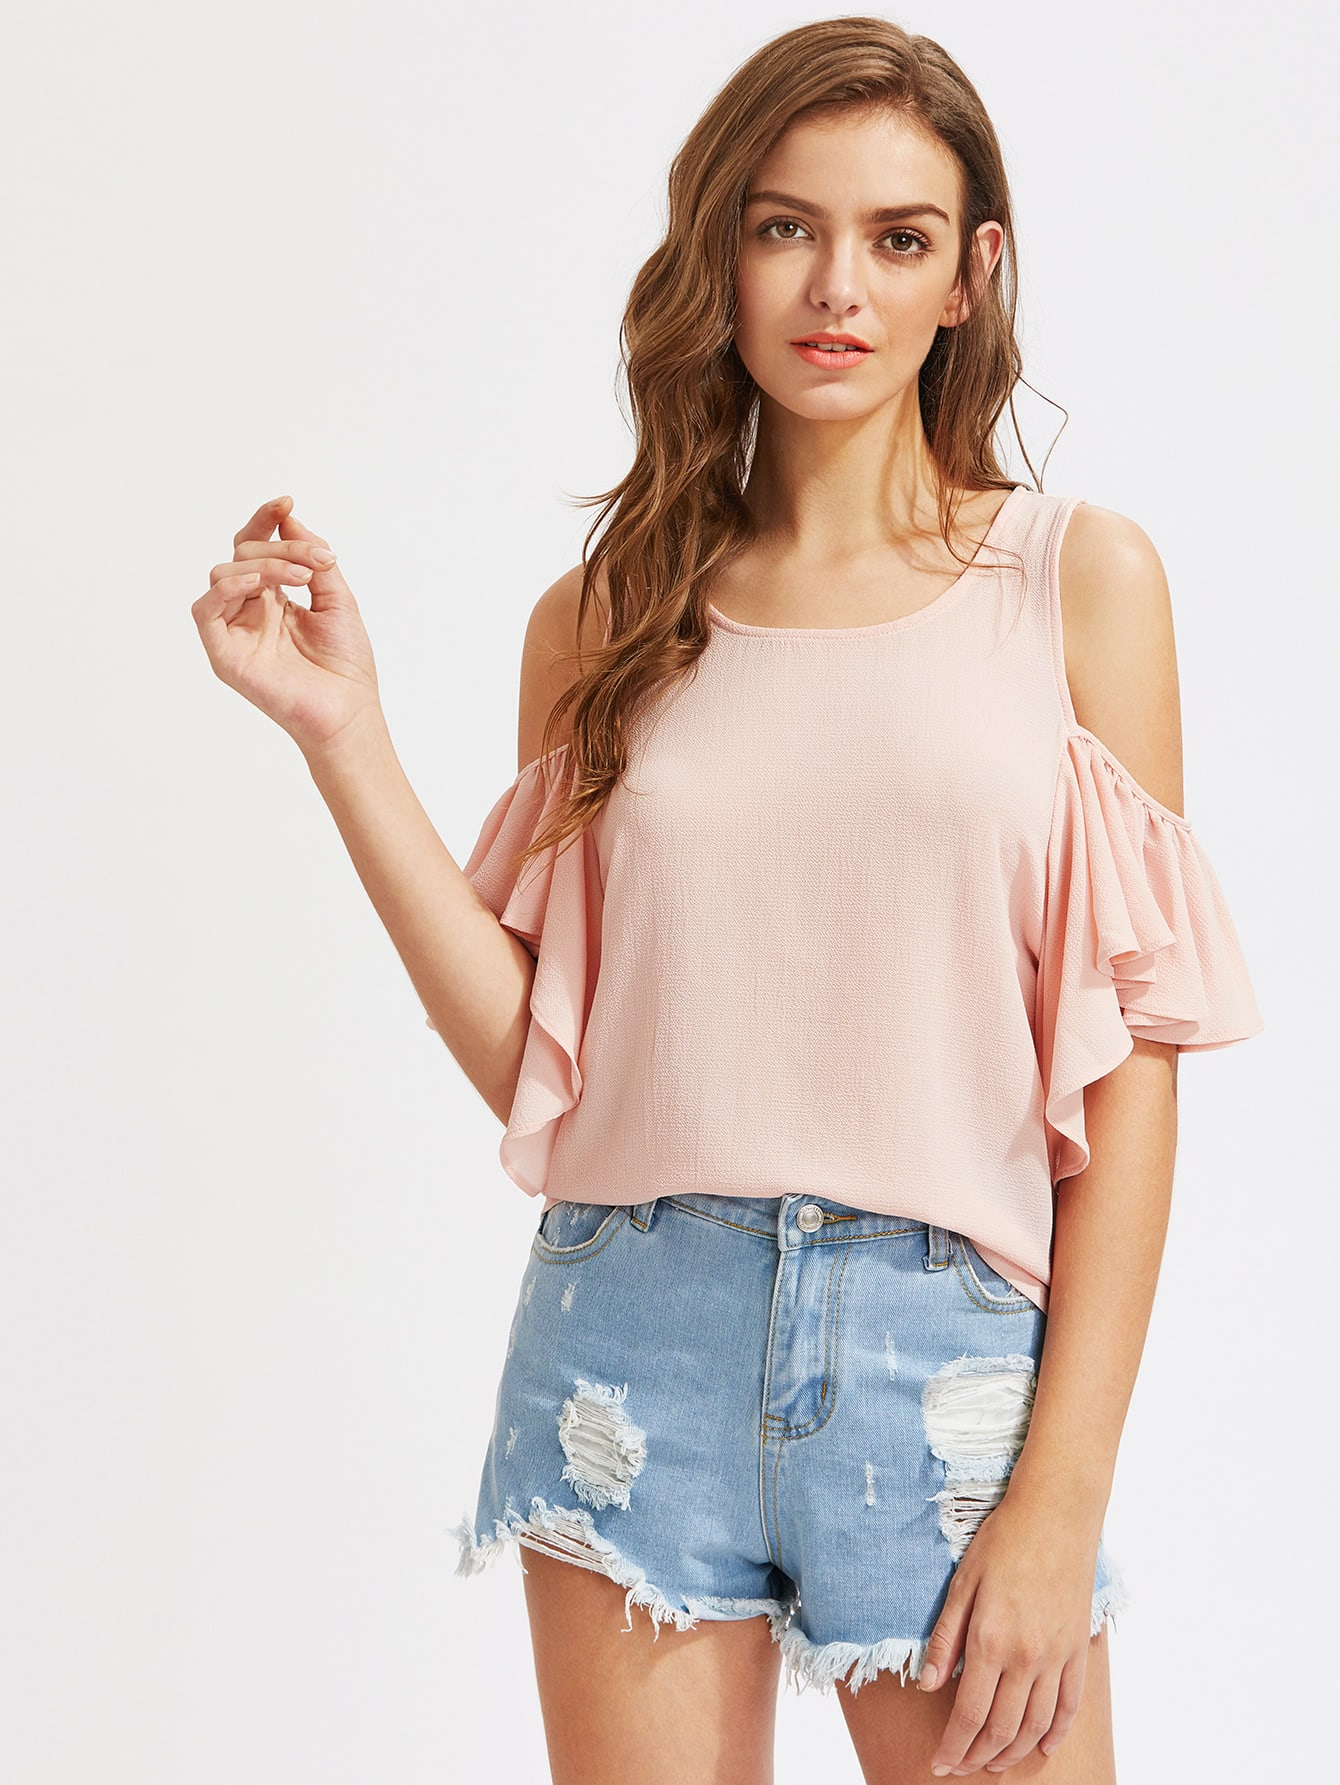 Cold Shoulder Tops. Oh so cold! Give 'em the cold-shoulder—in style—with chic cutout tops at the shoulder. Check out standout silhouettes featuring unique designs, accents or details for statement fashion no matter where you're headed.